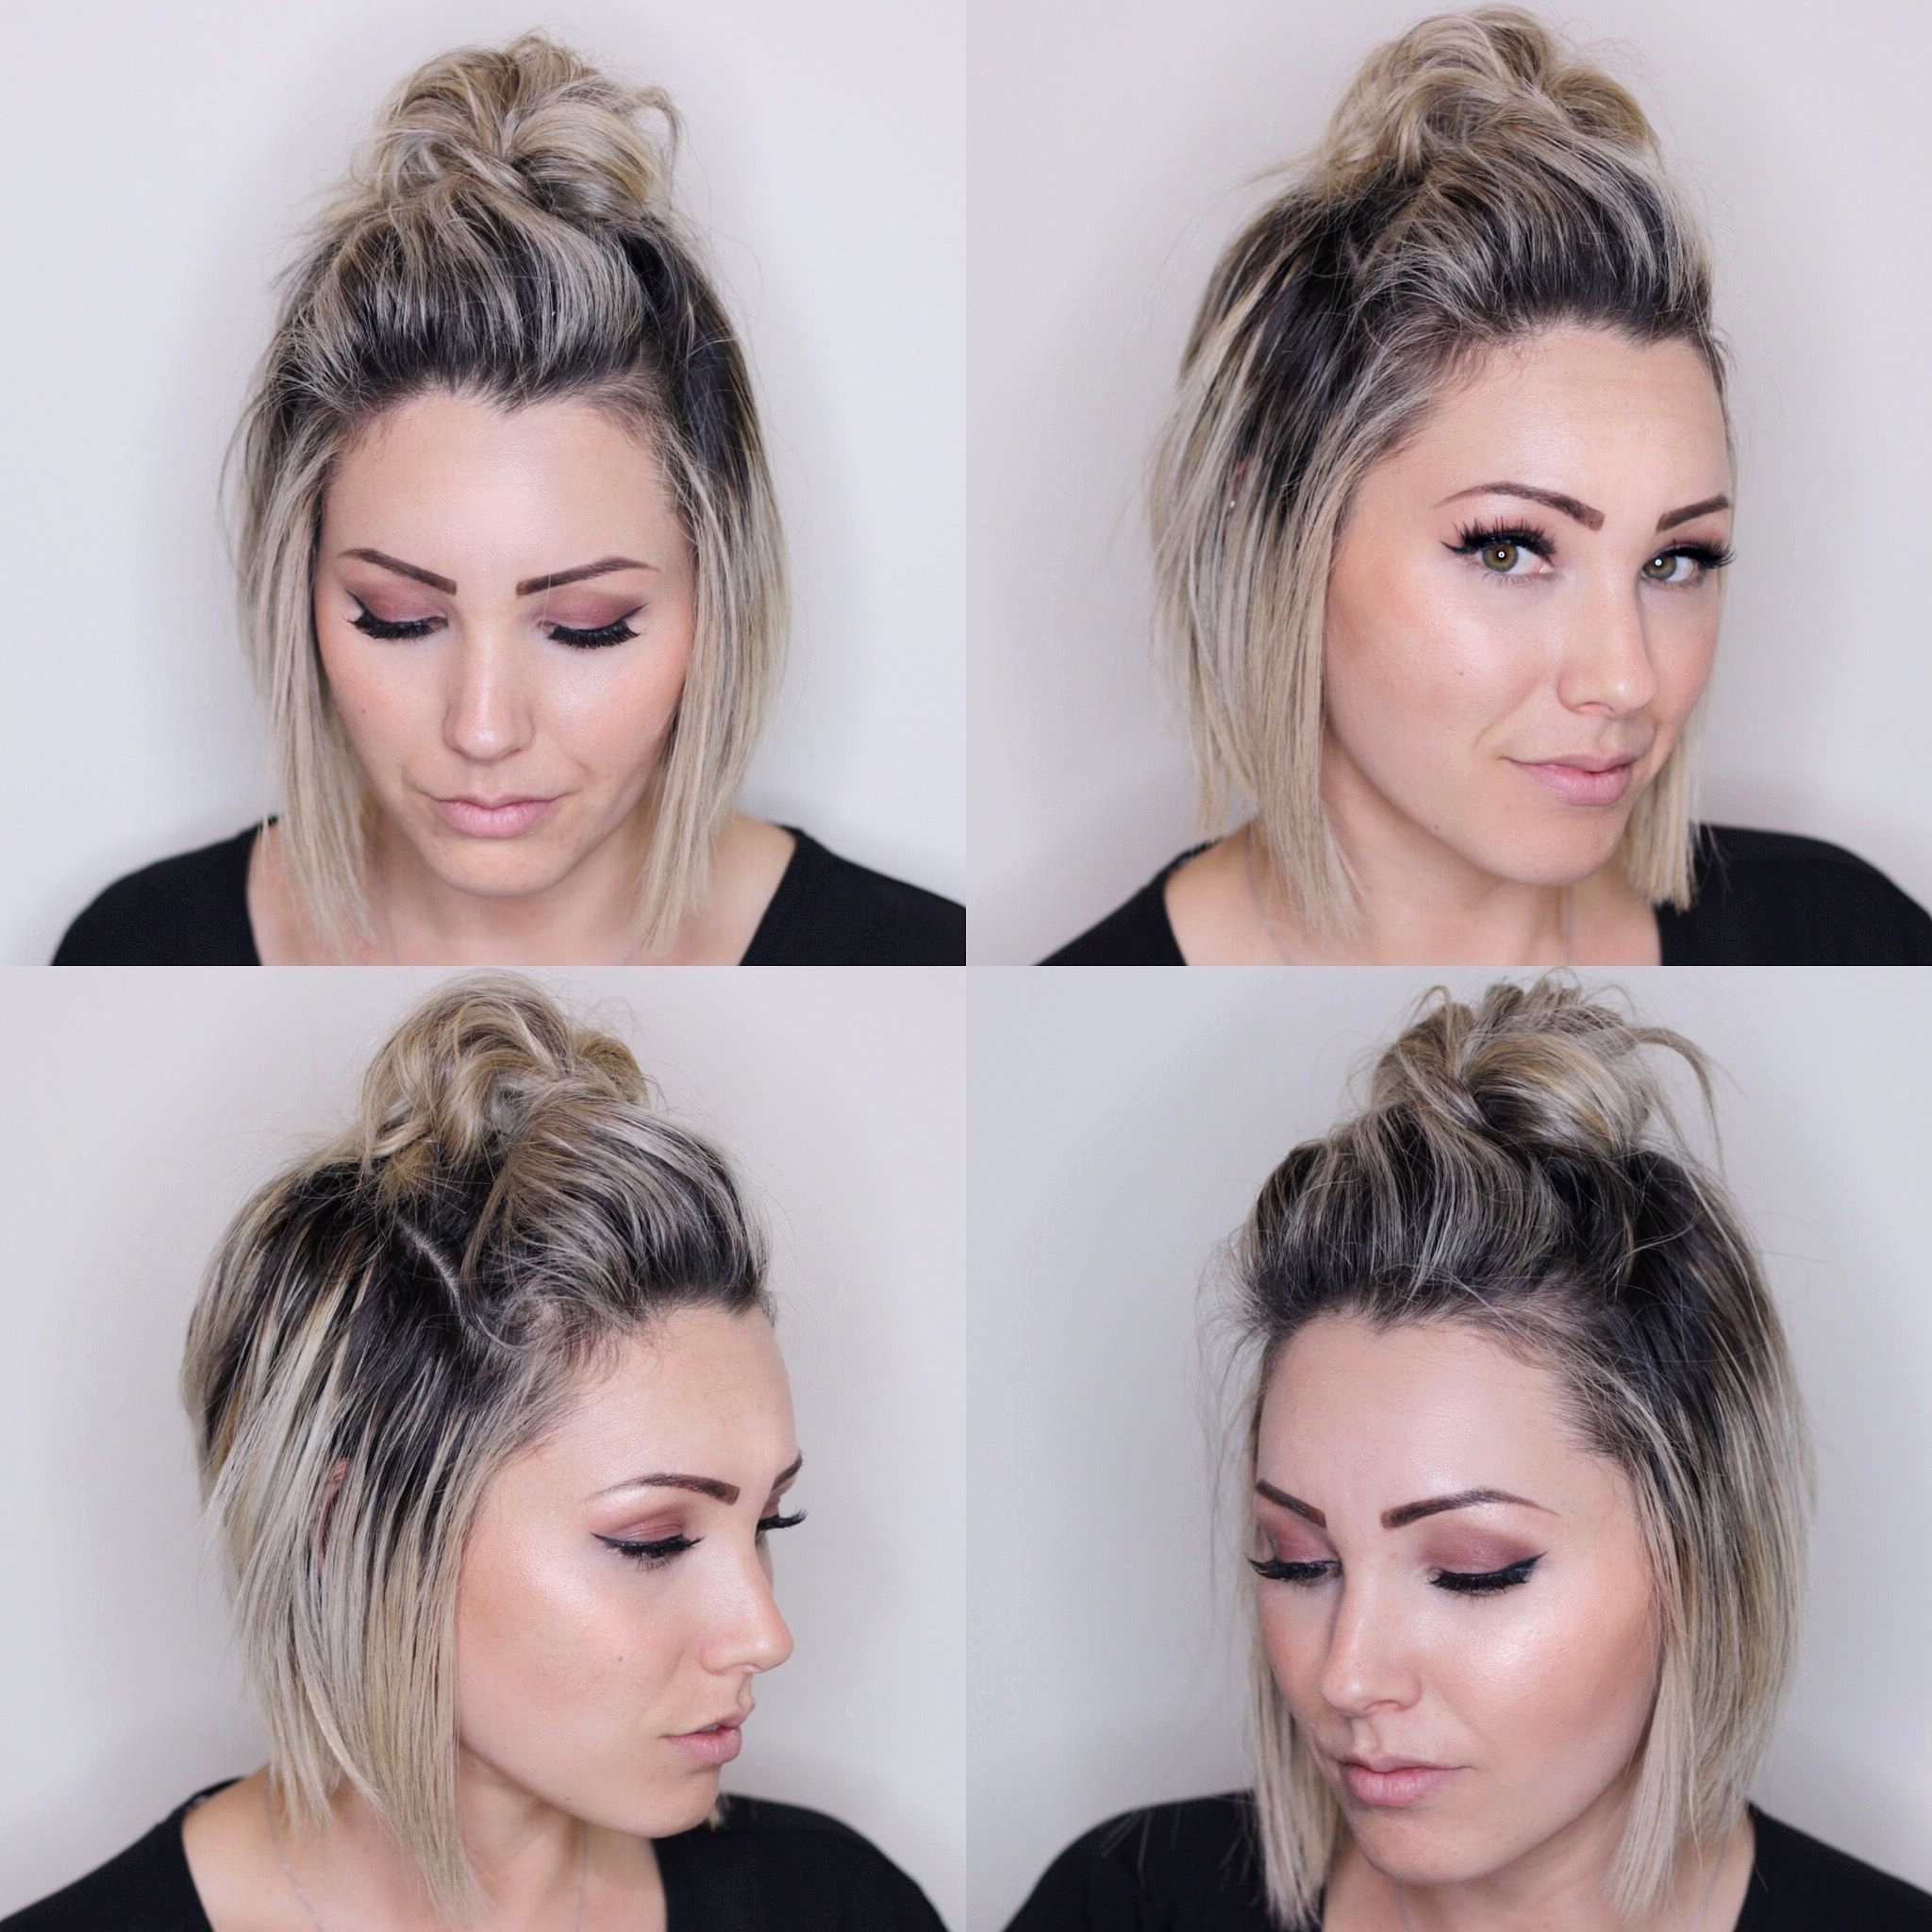 Most Current Simple Wedding Hairstyles For Bridesmaids Within Simple Bridesmaid Hairstyles For Short Hair Inspirational Top Knot (View 6 of 15)